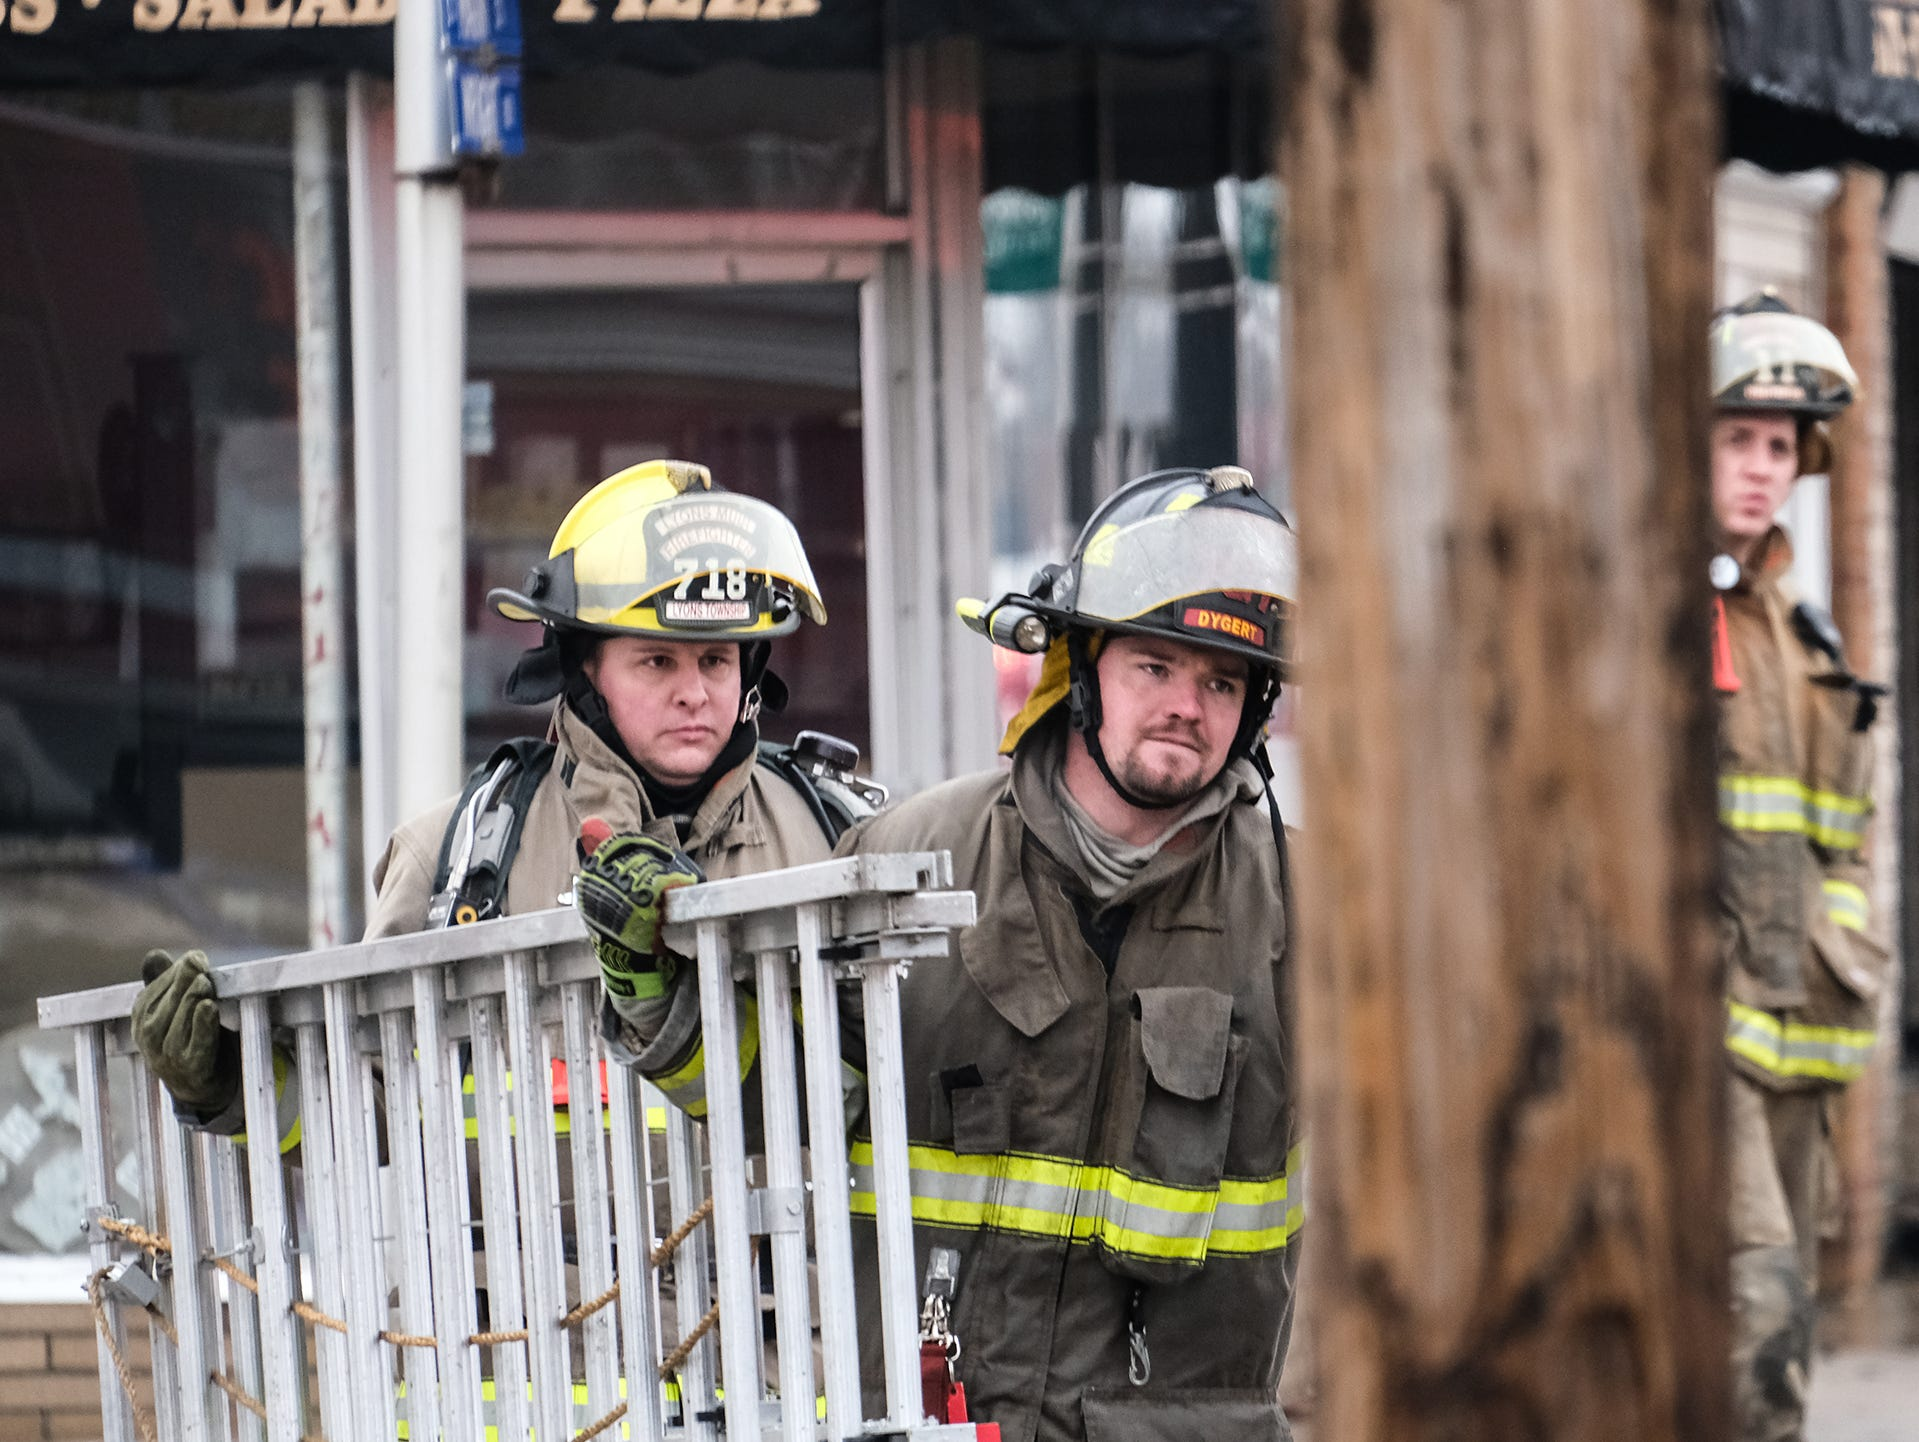 Firefighters are at work in Fowler to extinguish a fire in the downtown area Saturday, Dec. 15, 2018.